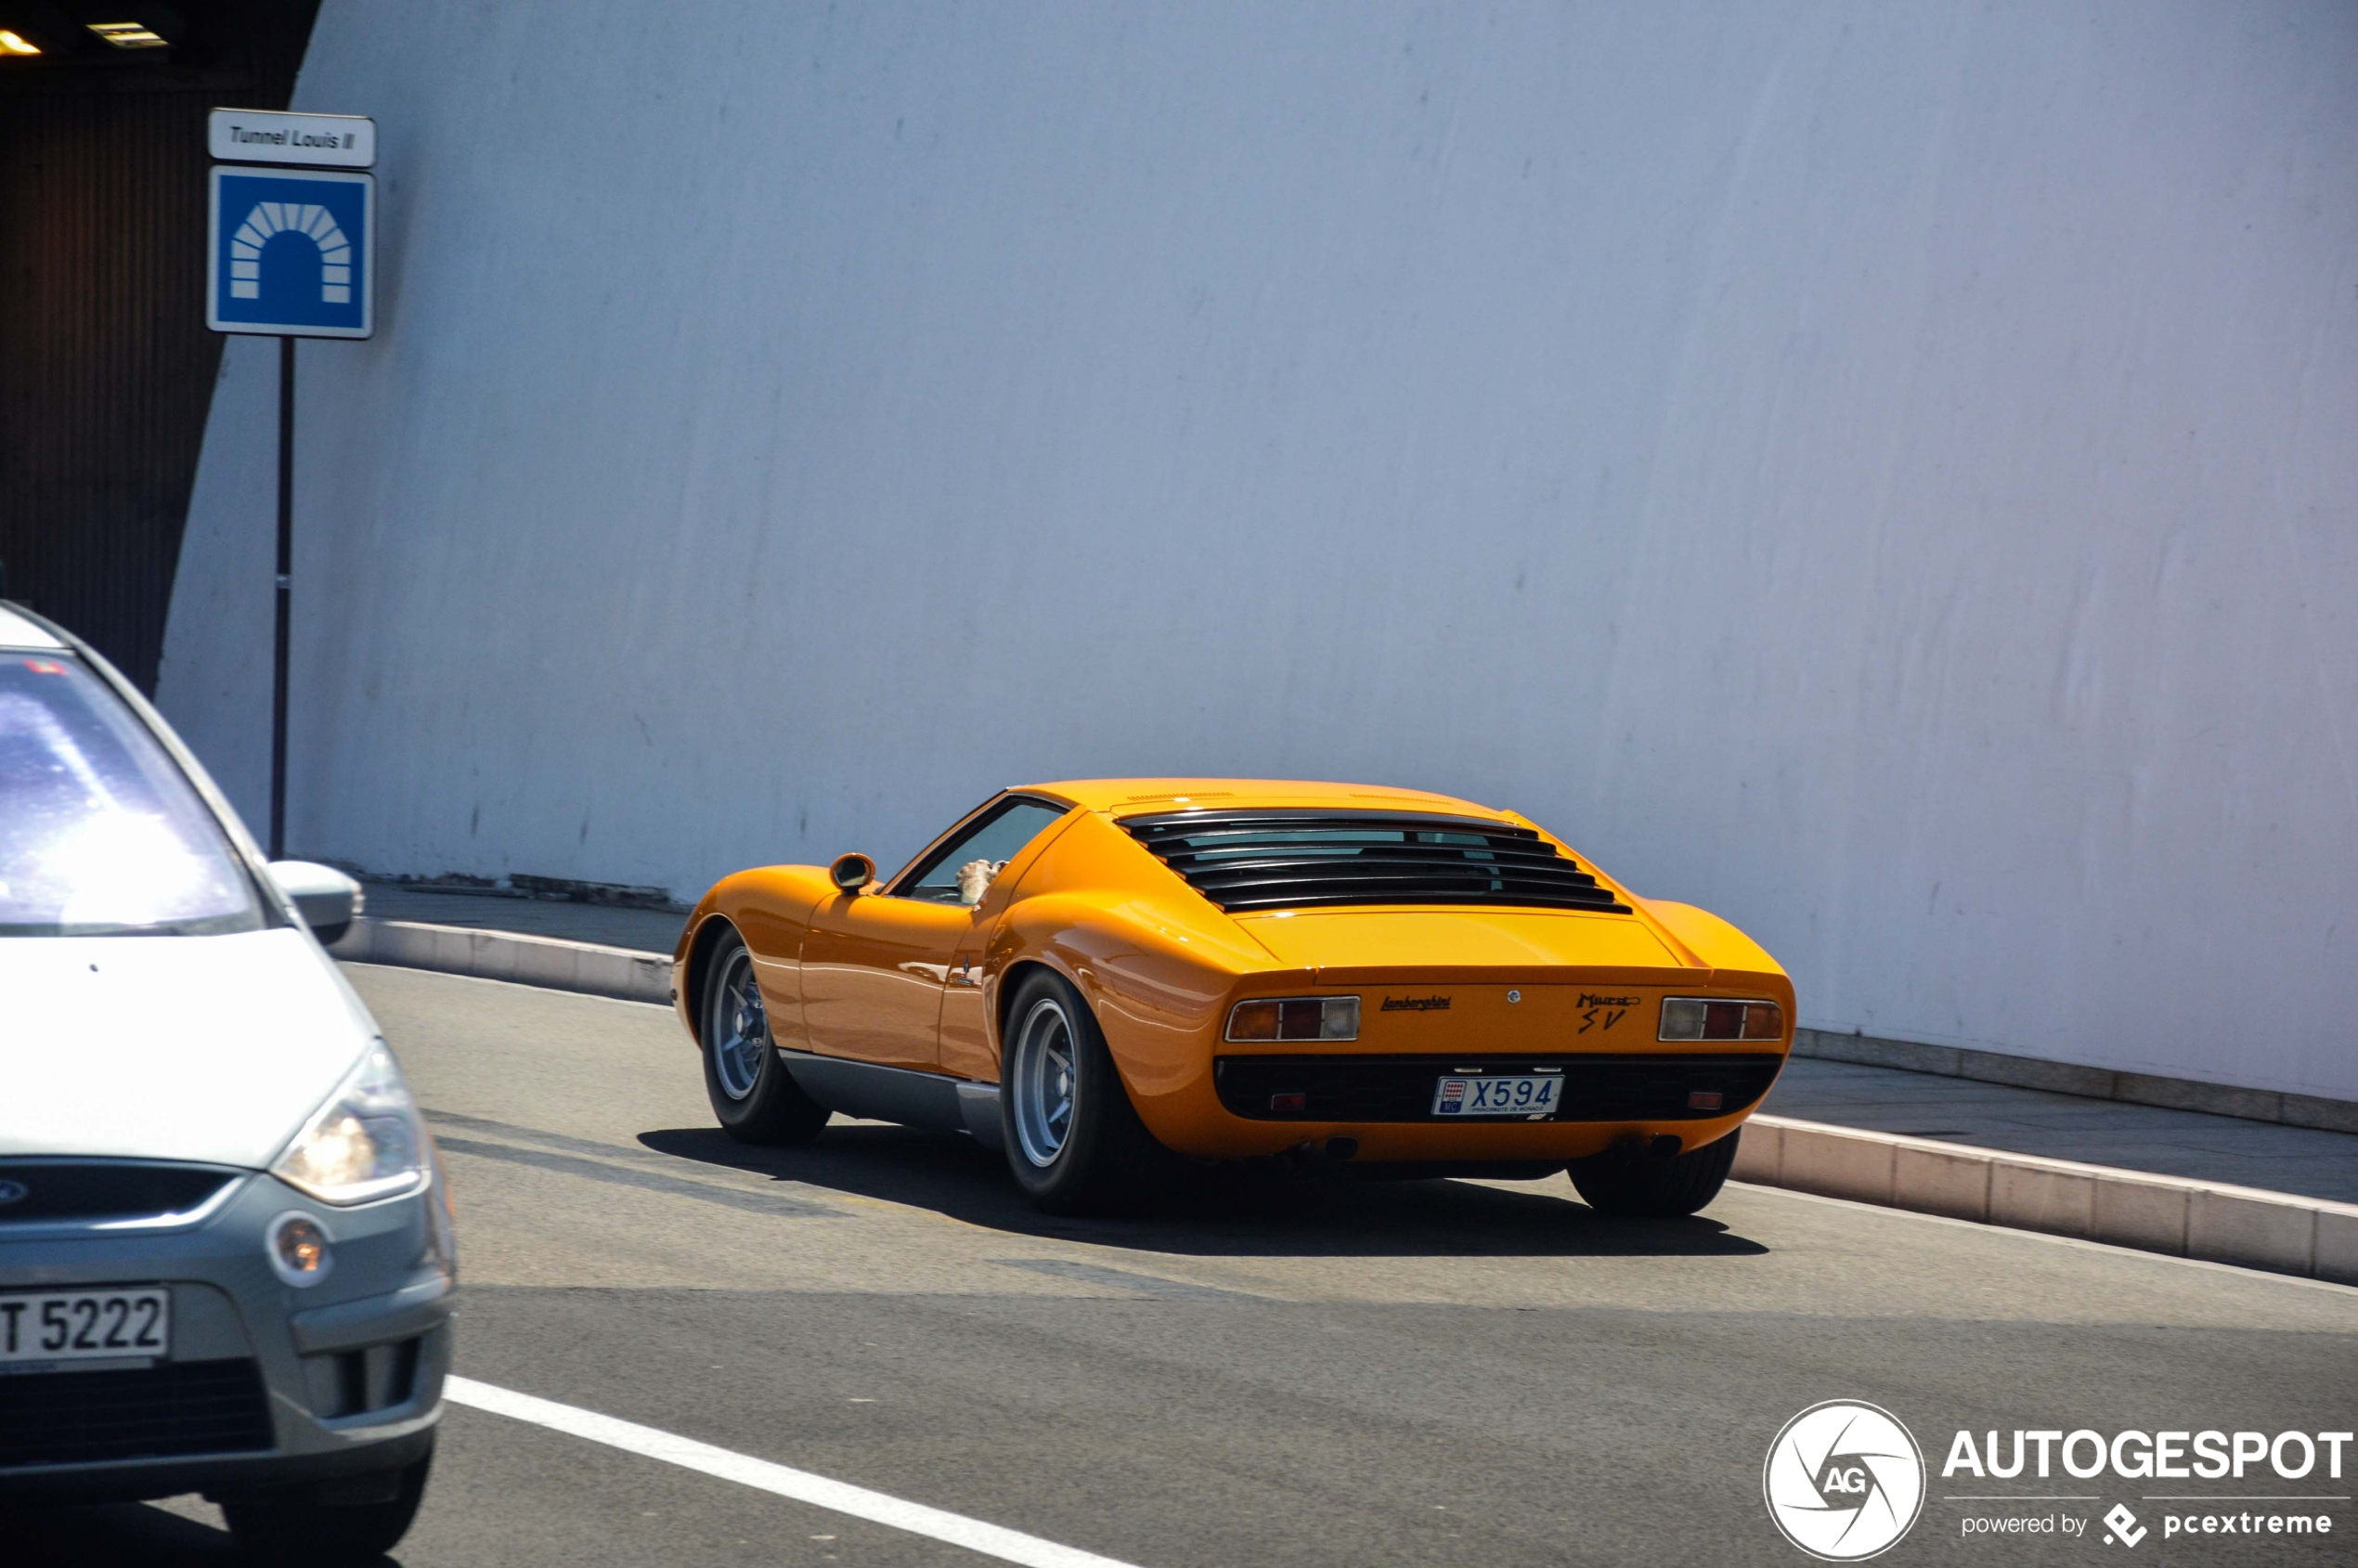 This Lamborghini has been a resident of Monaco for years